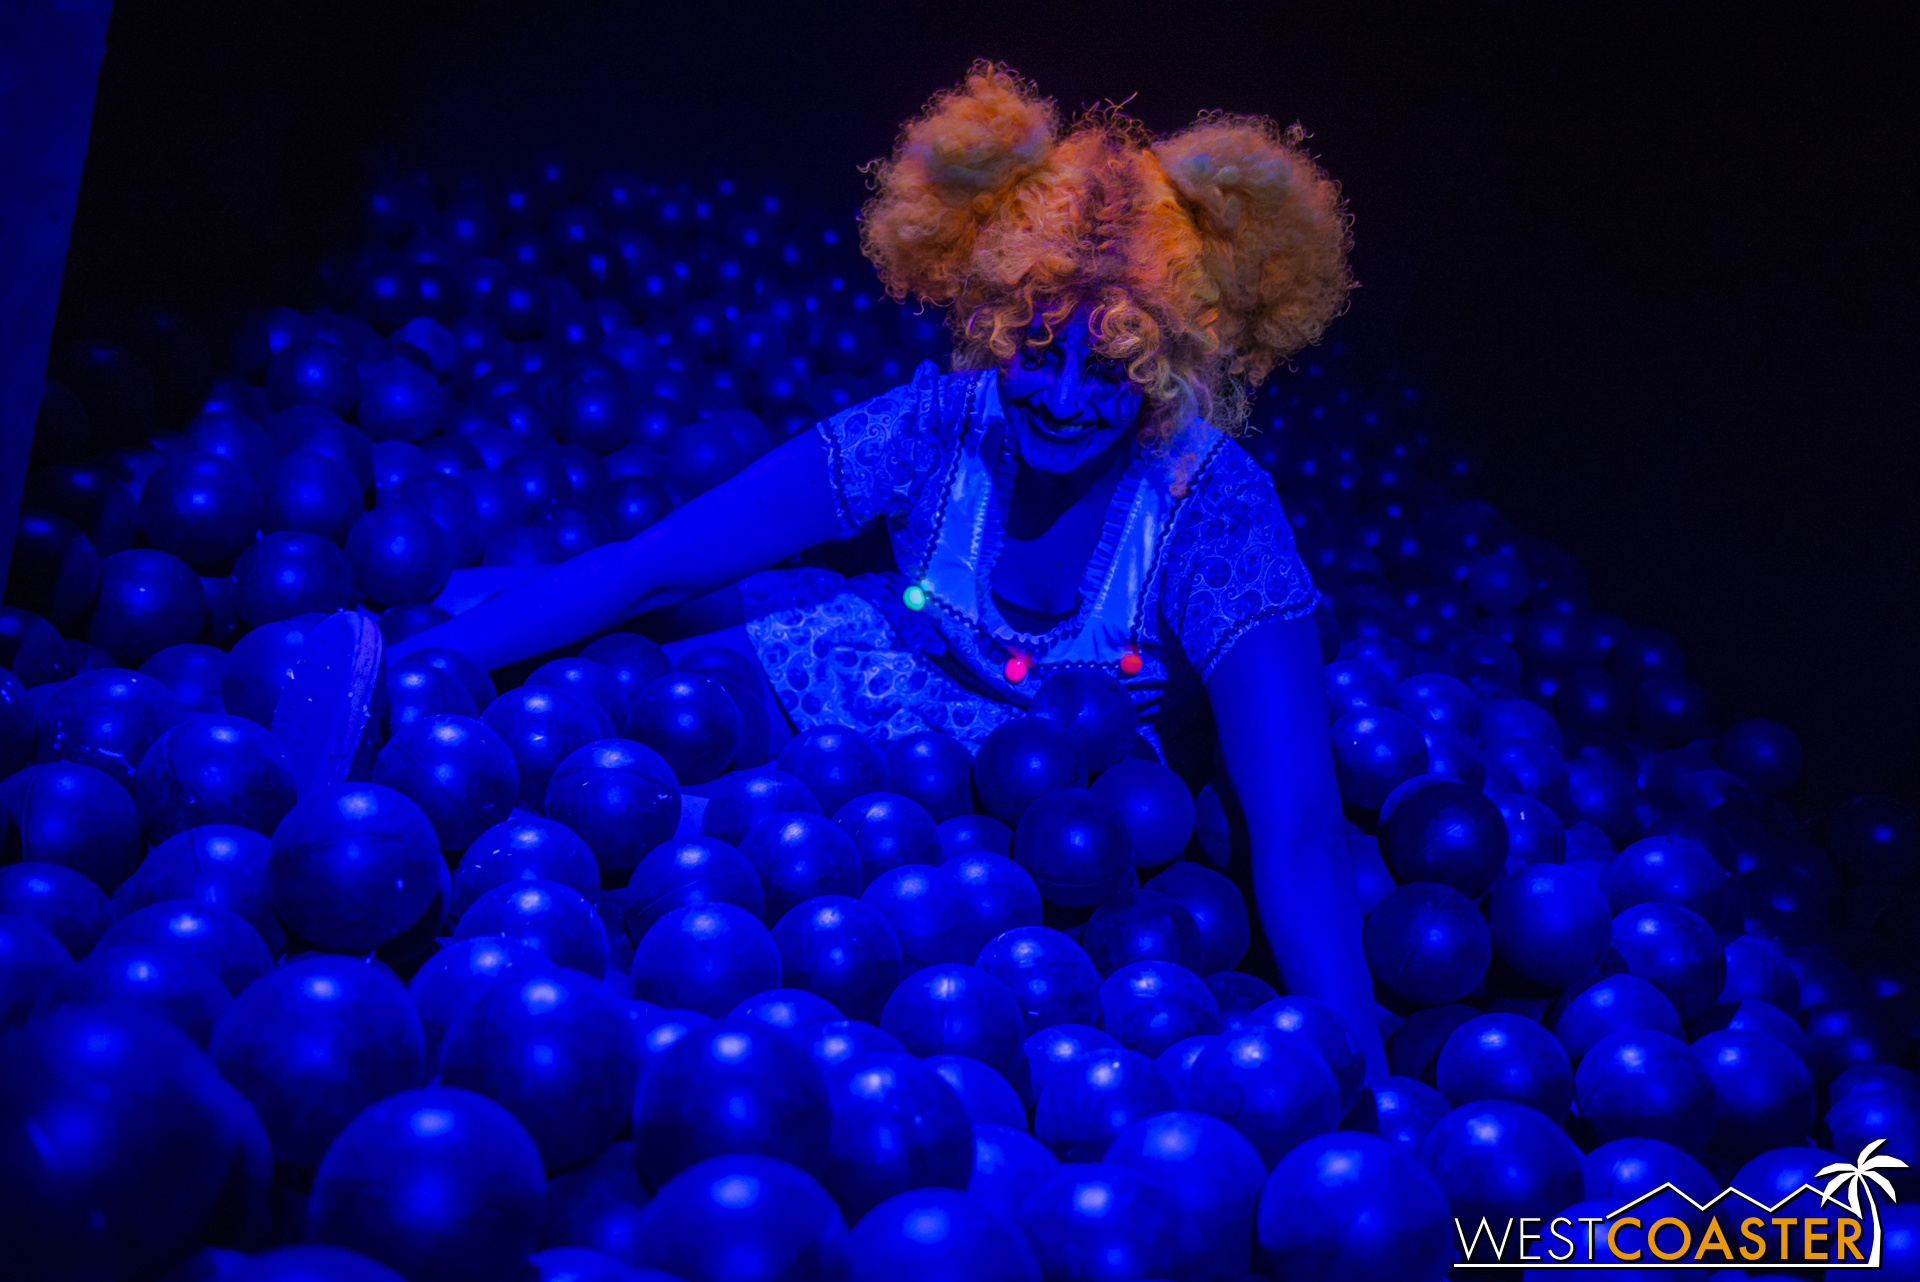 The ball pit room is back at Circus this year, but you have to find it!